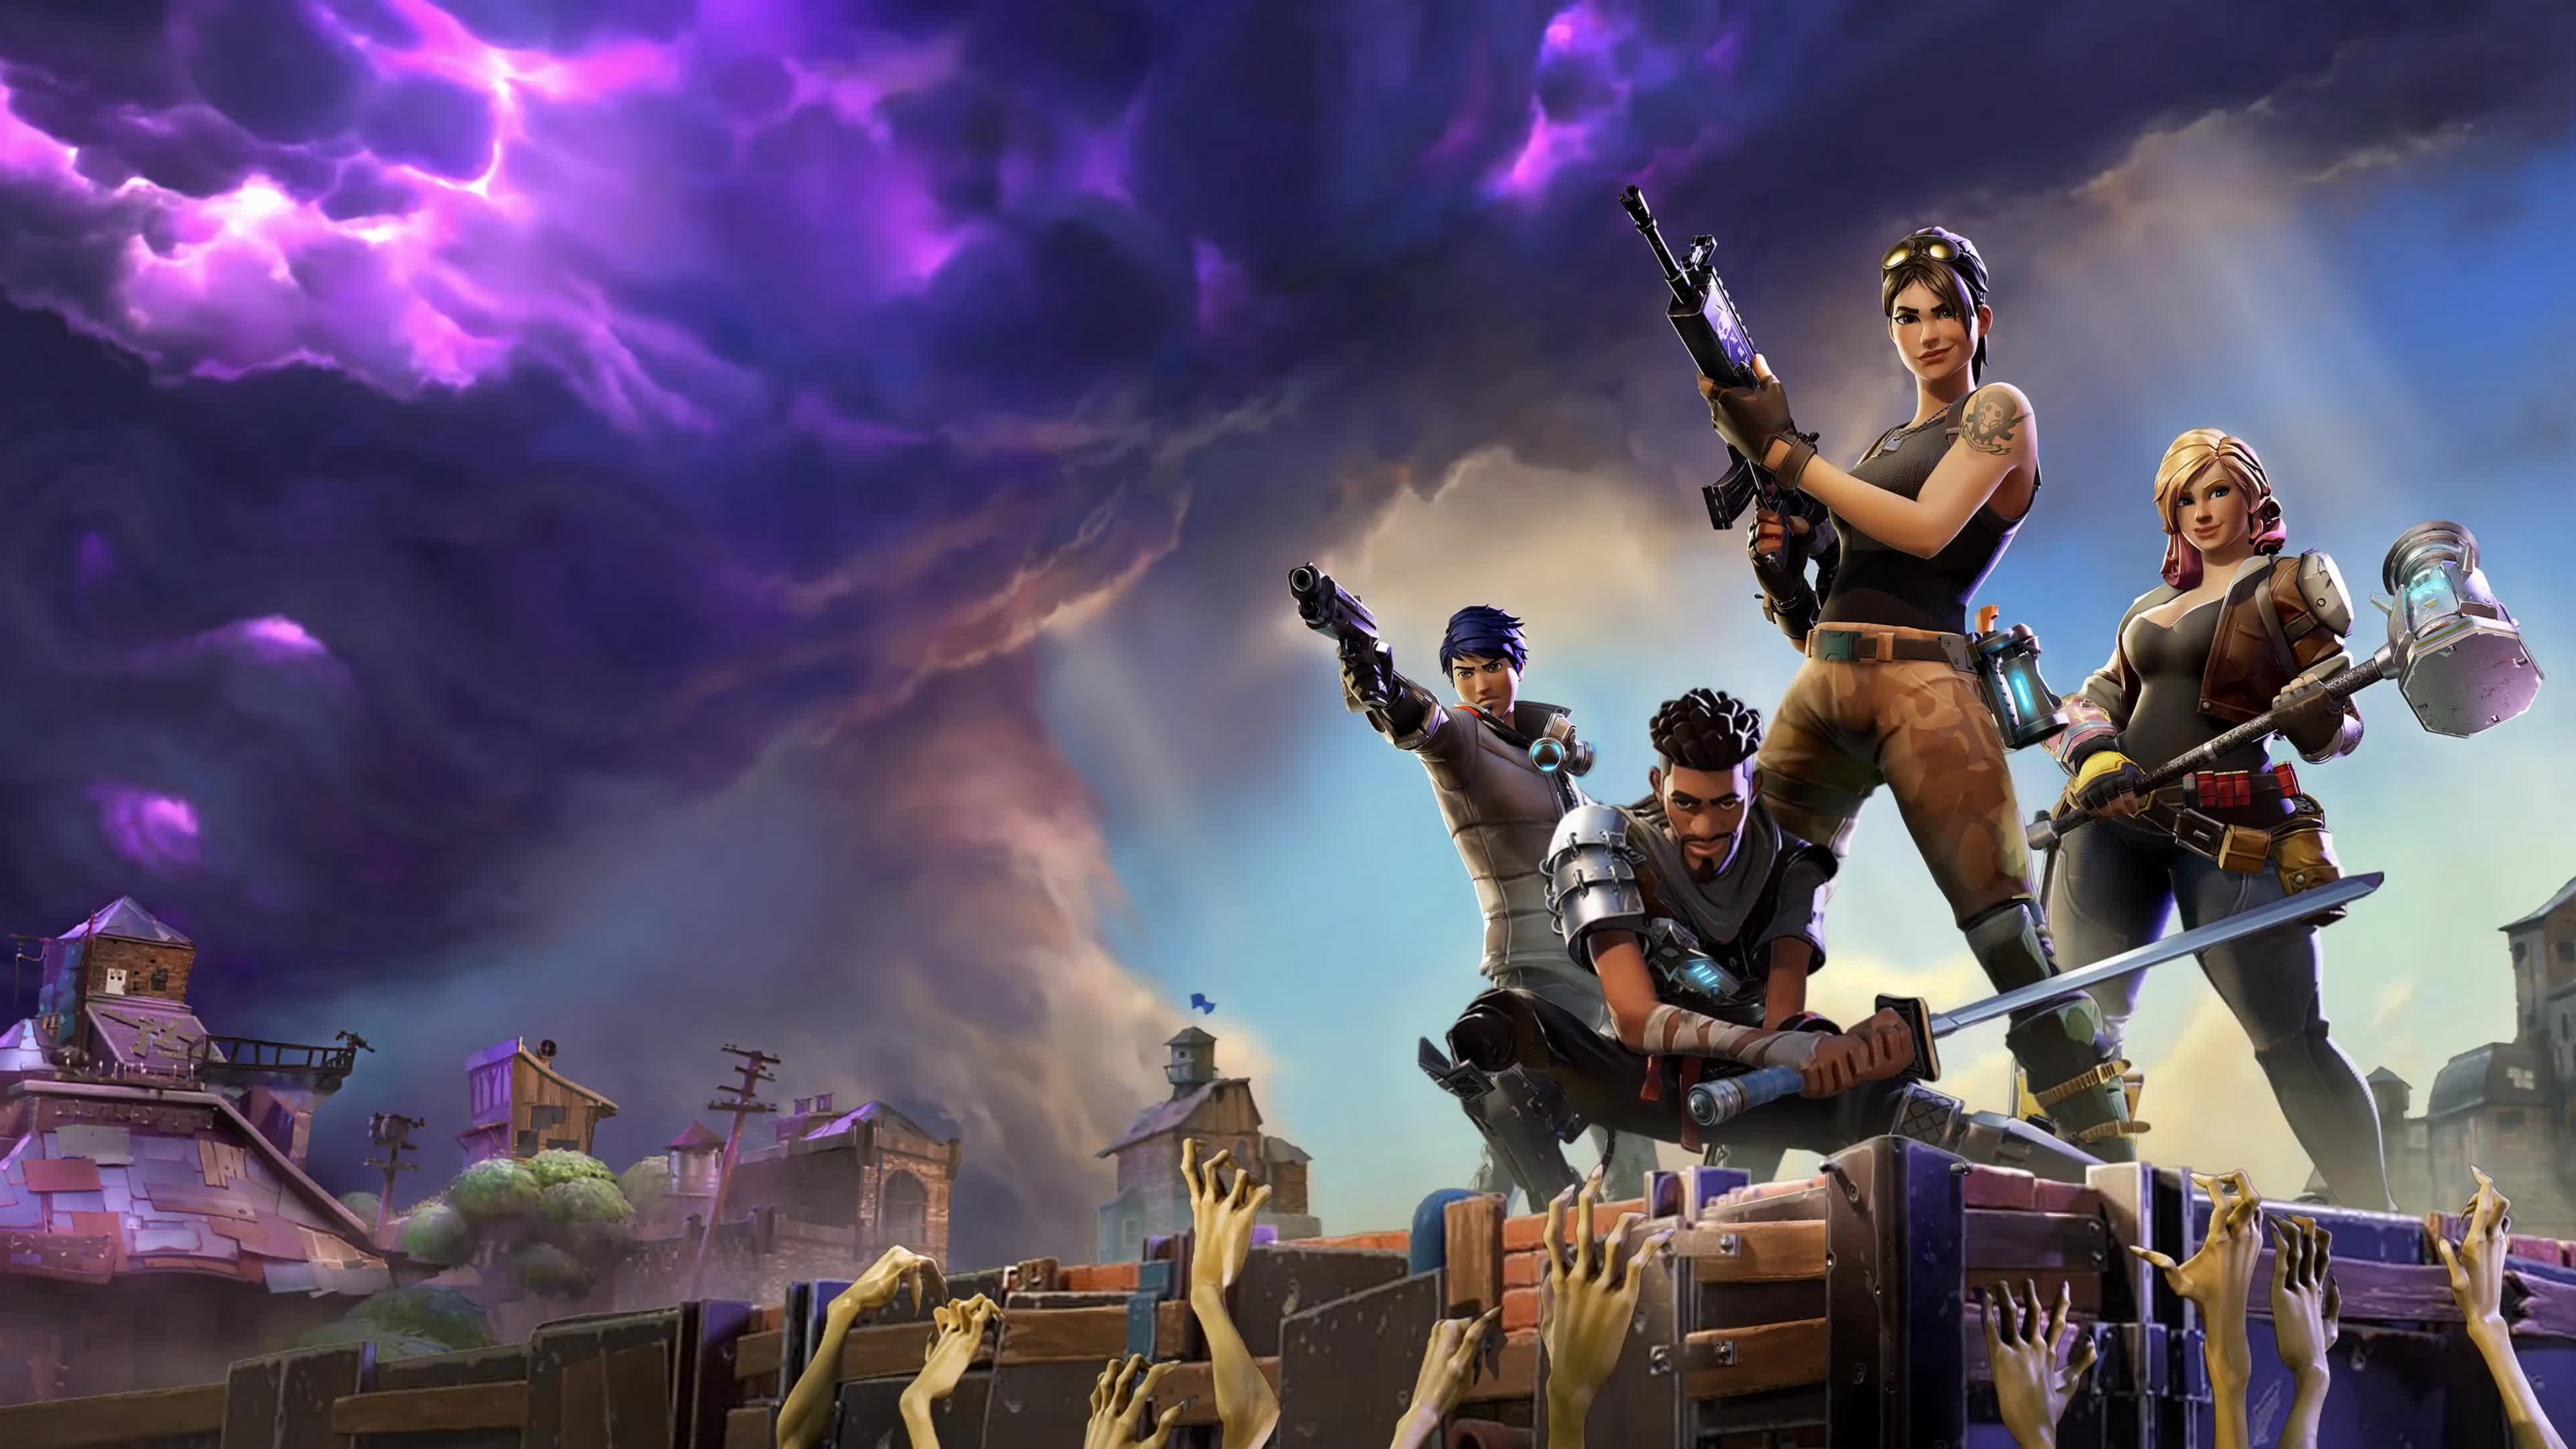 Fortnite Animated Wallpapers Top Free Fortnite Animated Backgrounds Wallpaperaccess